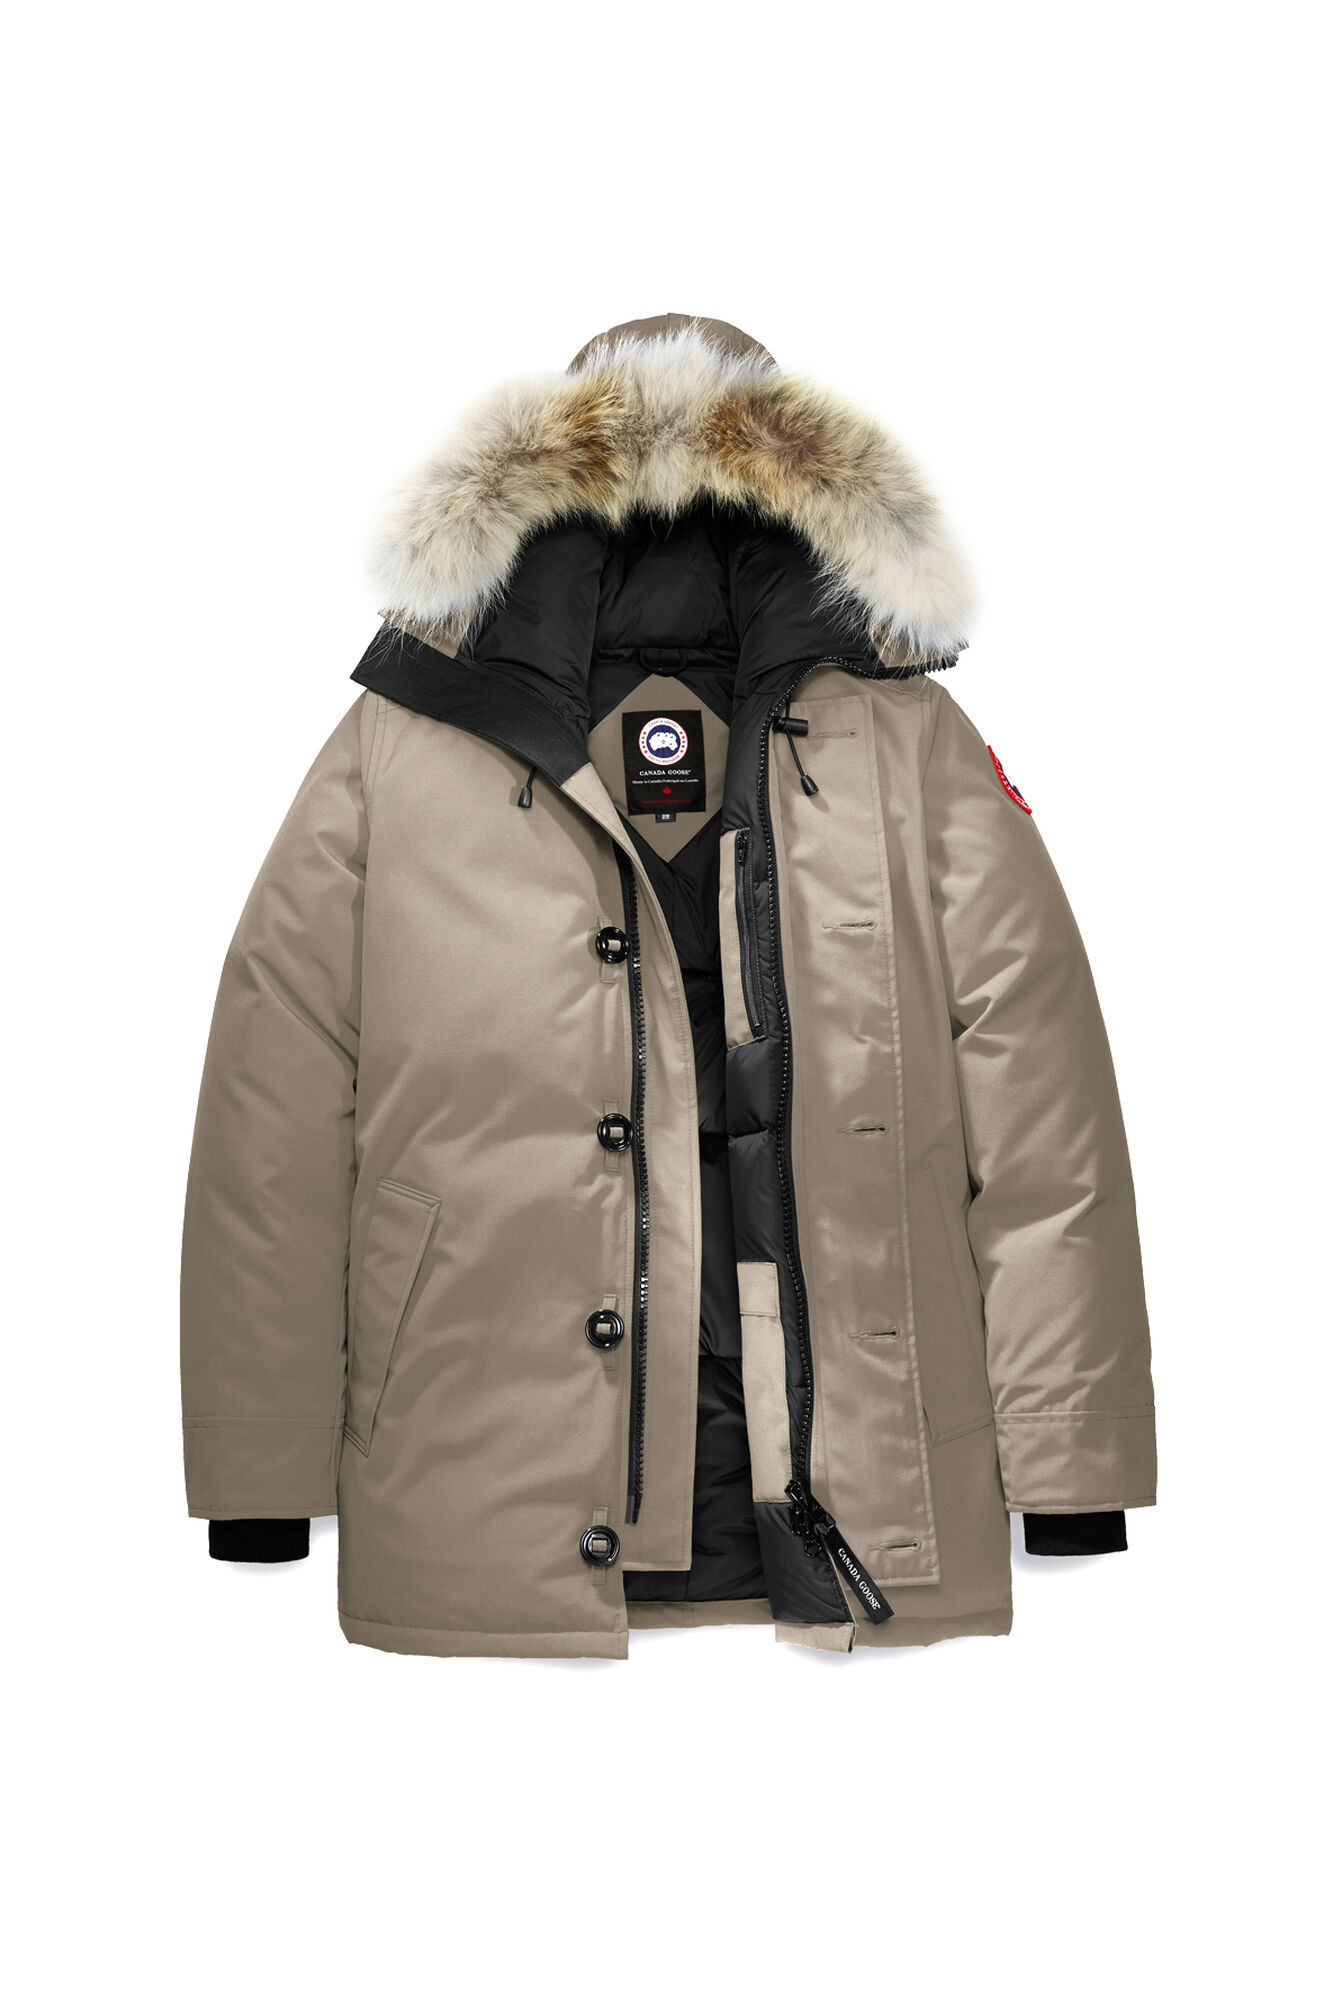 Canada Goose womens online fake - Men's Arctic Program Chateau Parka | Canada Goose?